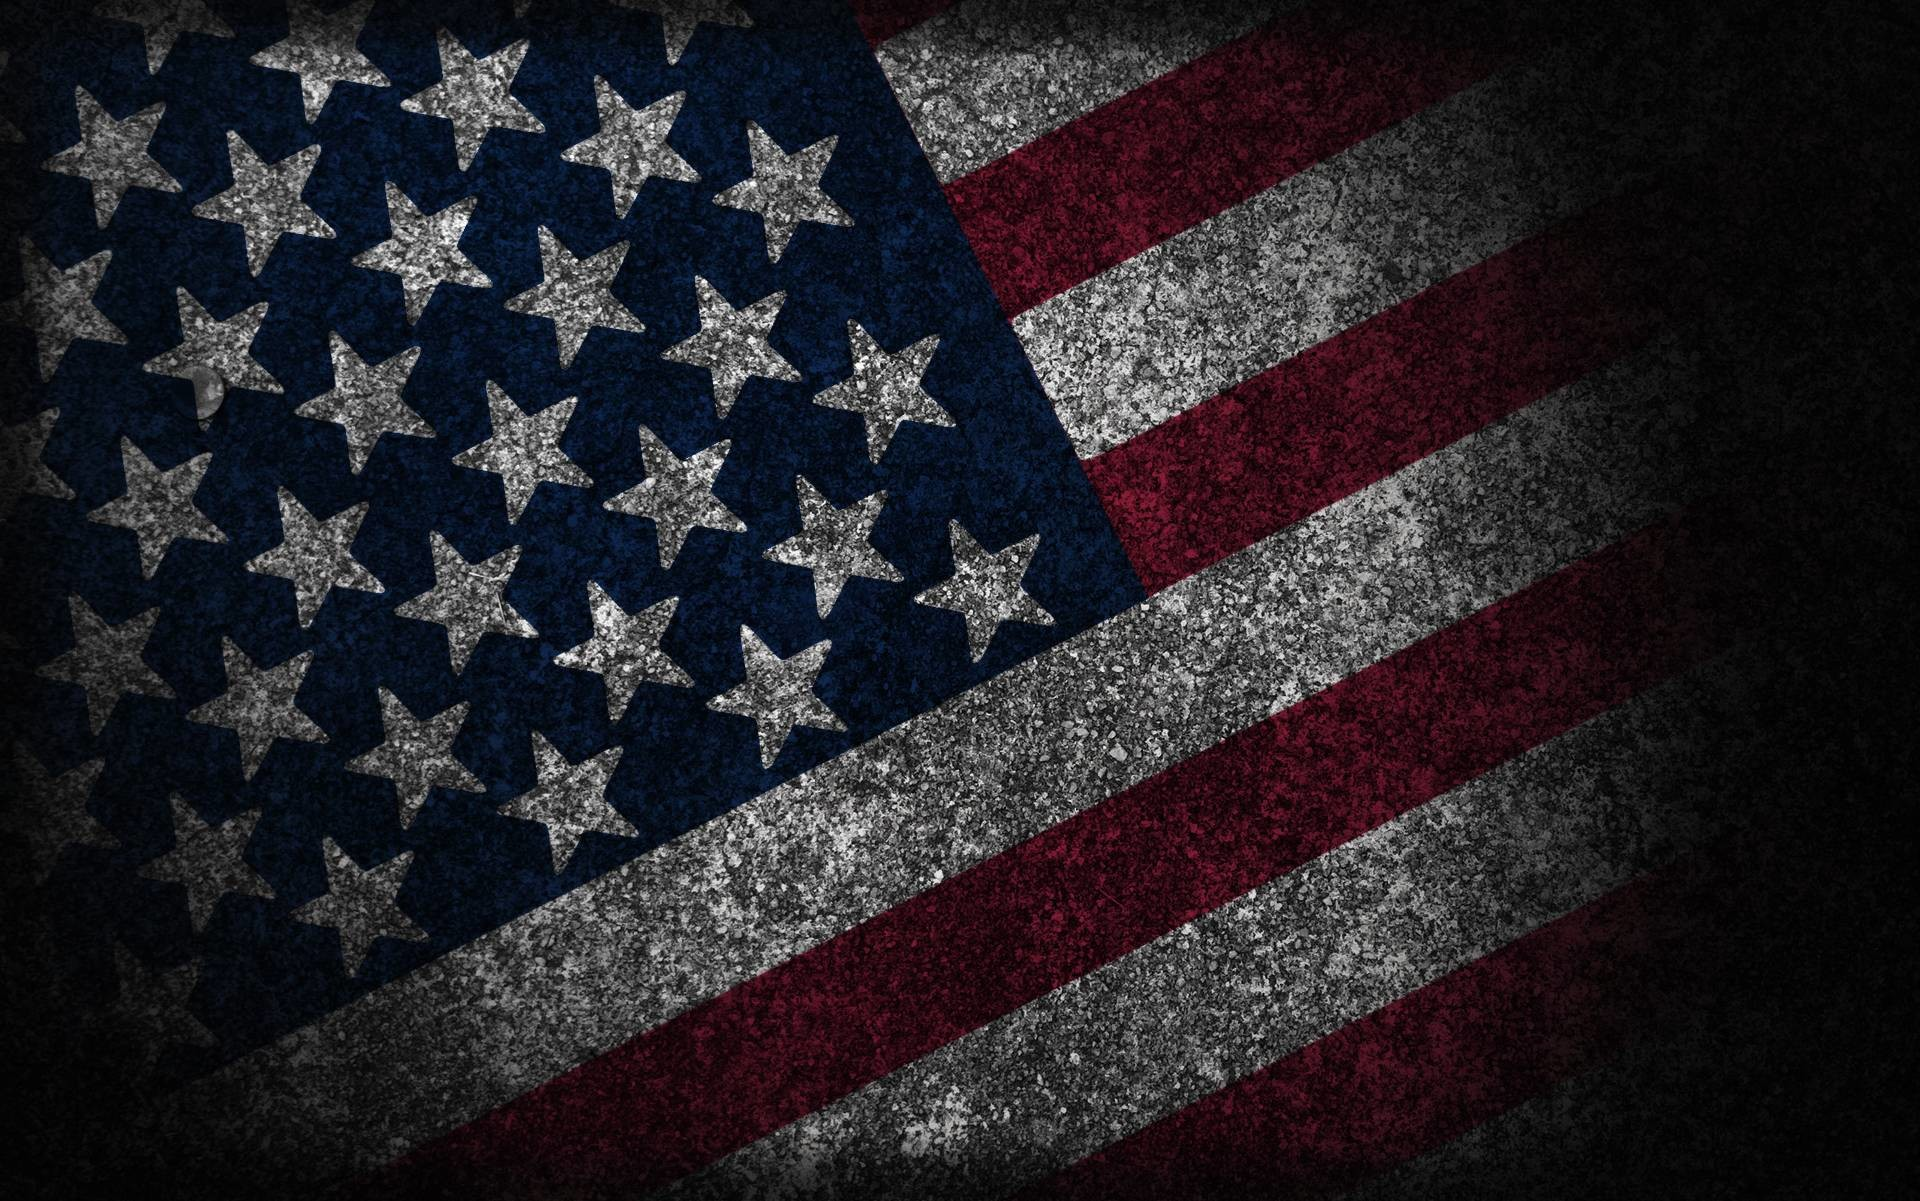 American Flag Wallpaper 1920×1200 by hassified on DeviantArt